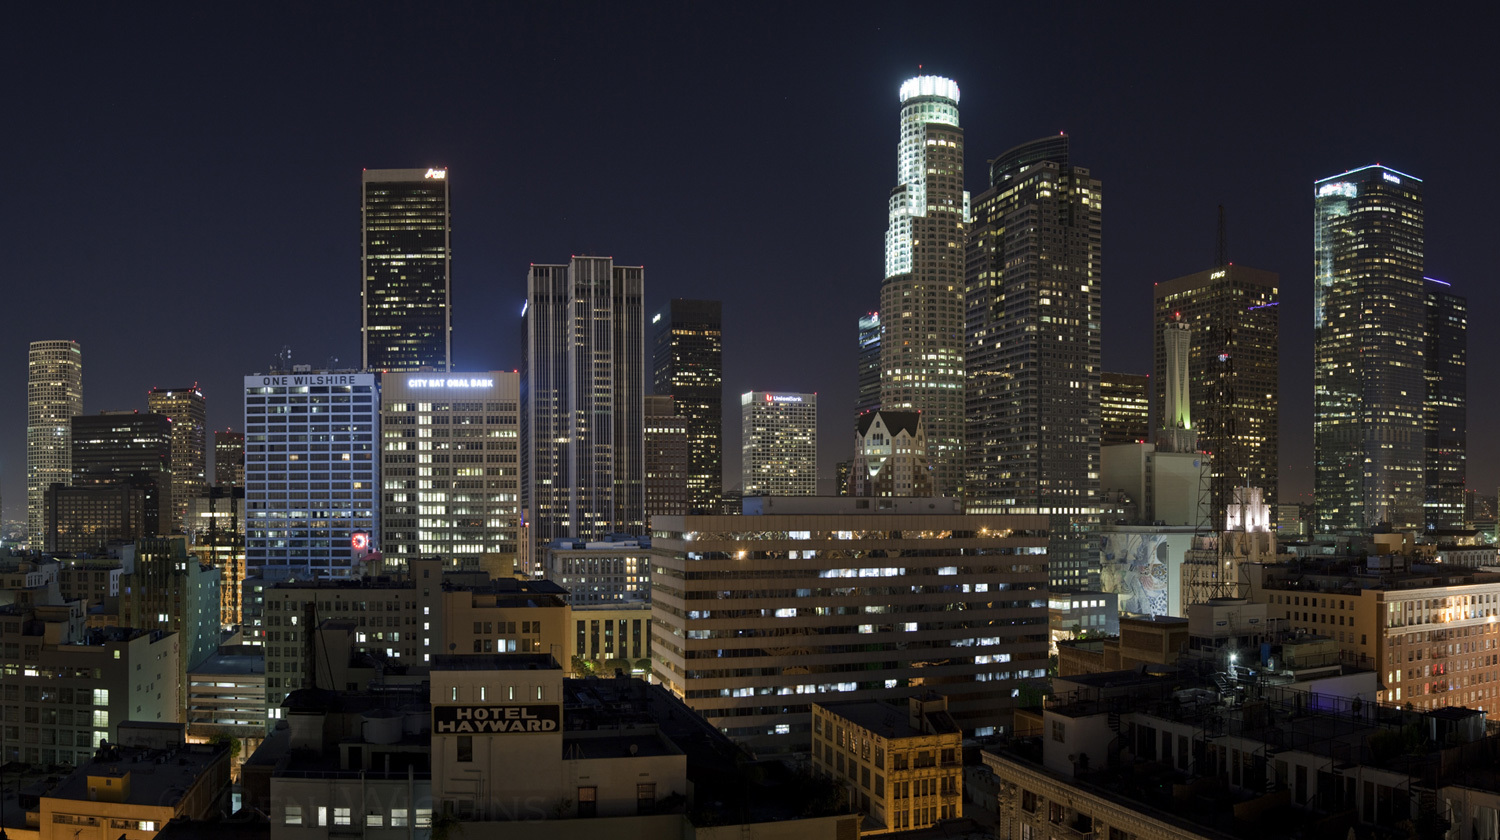 Comedians describe Downtown LA in five words or less